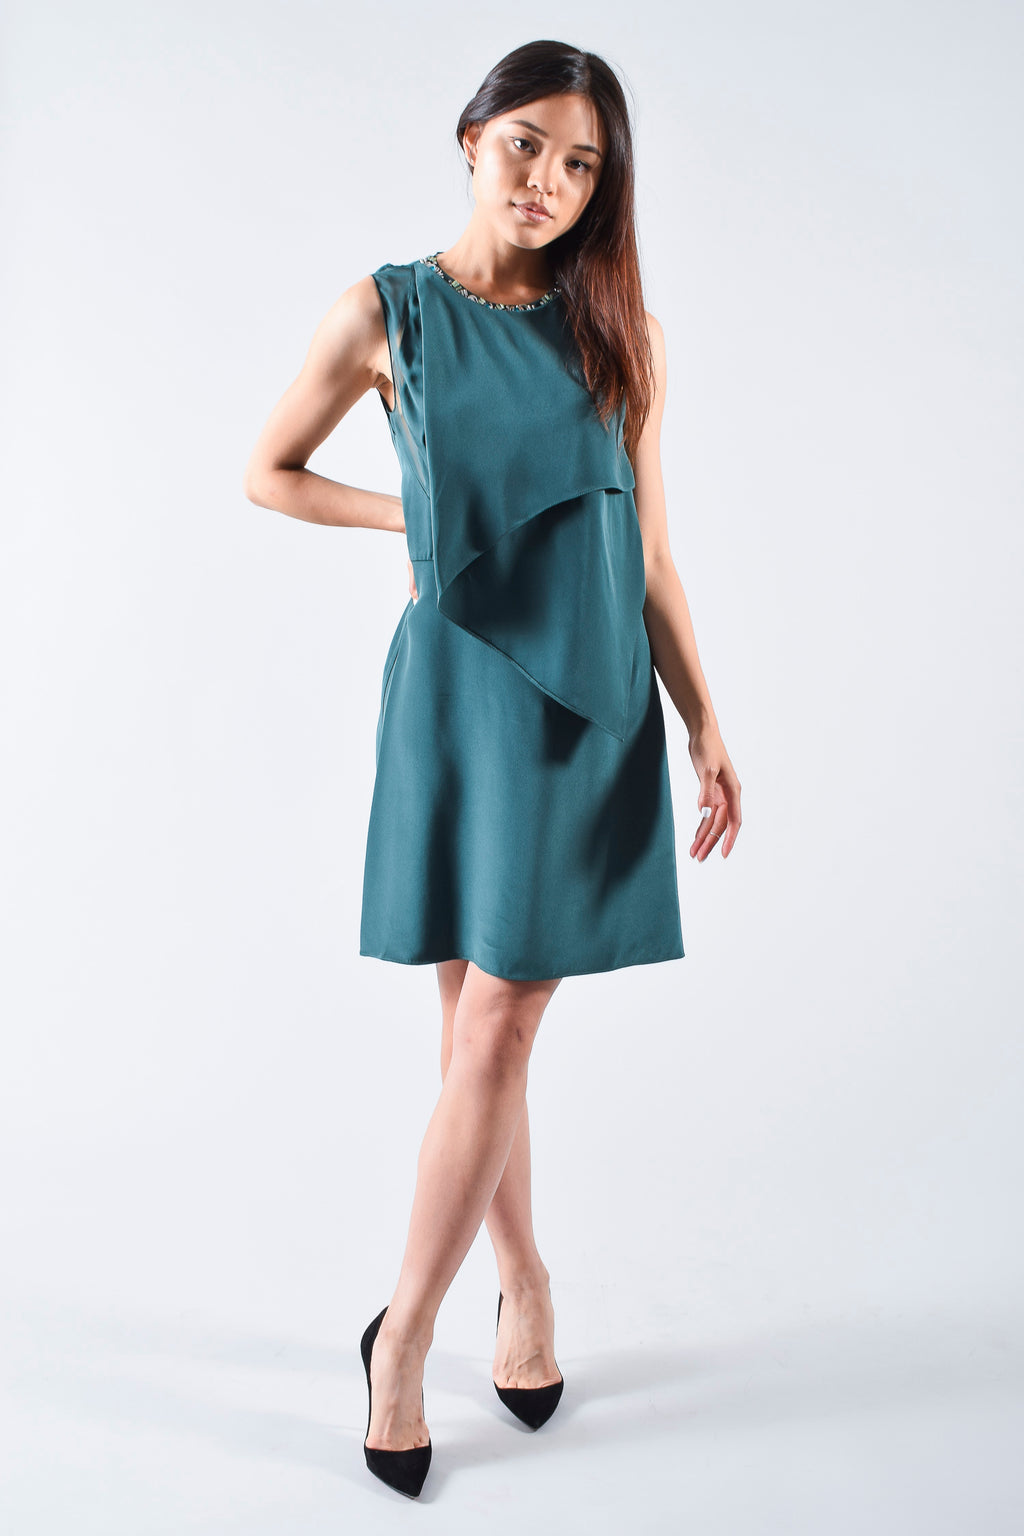 Phillip Lim Green Silk Dress with Jewelled Collar Size 0